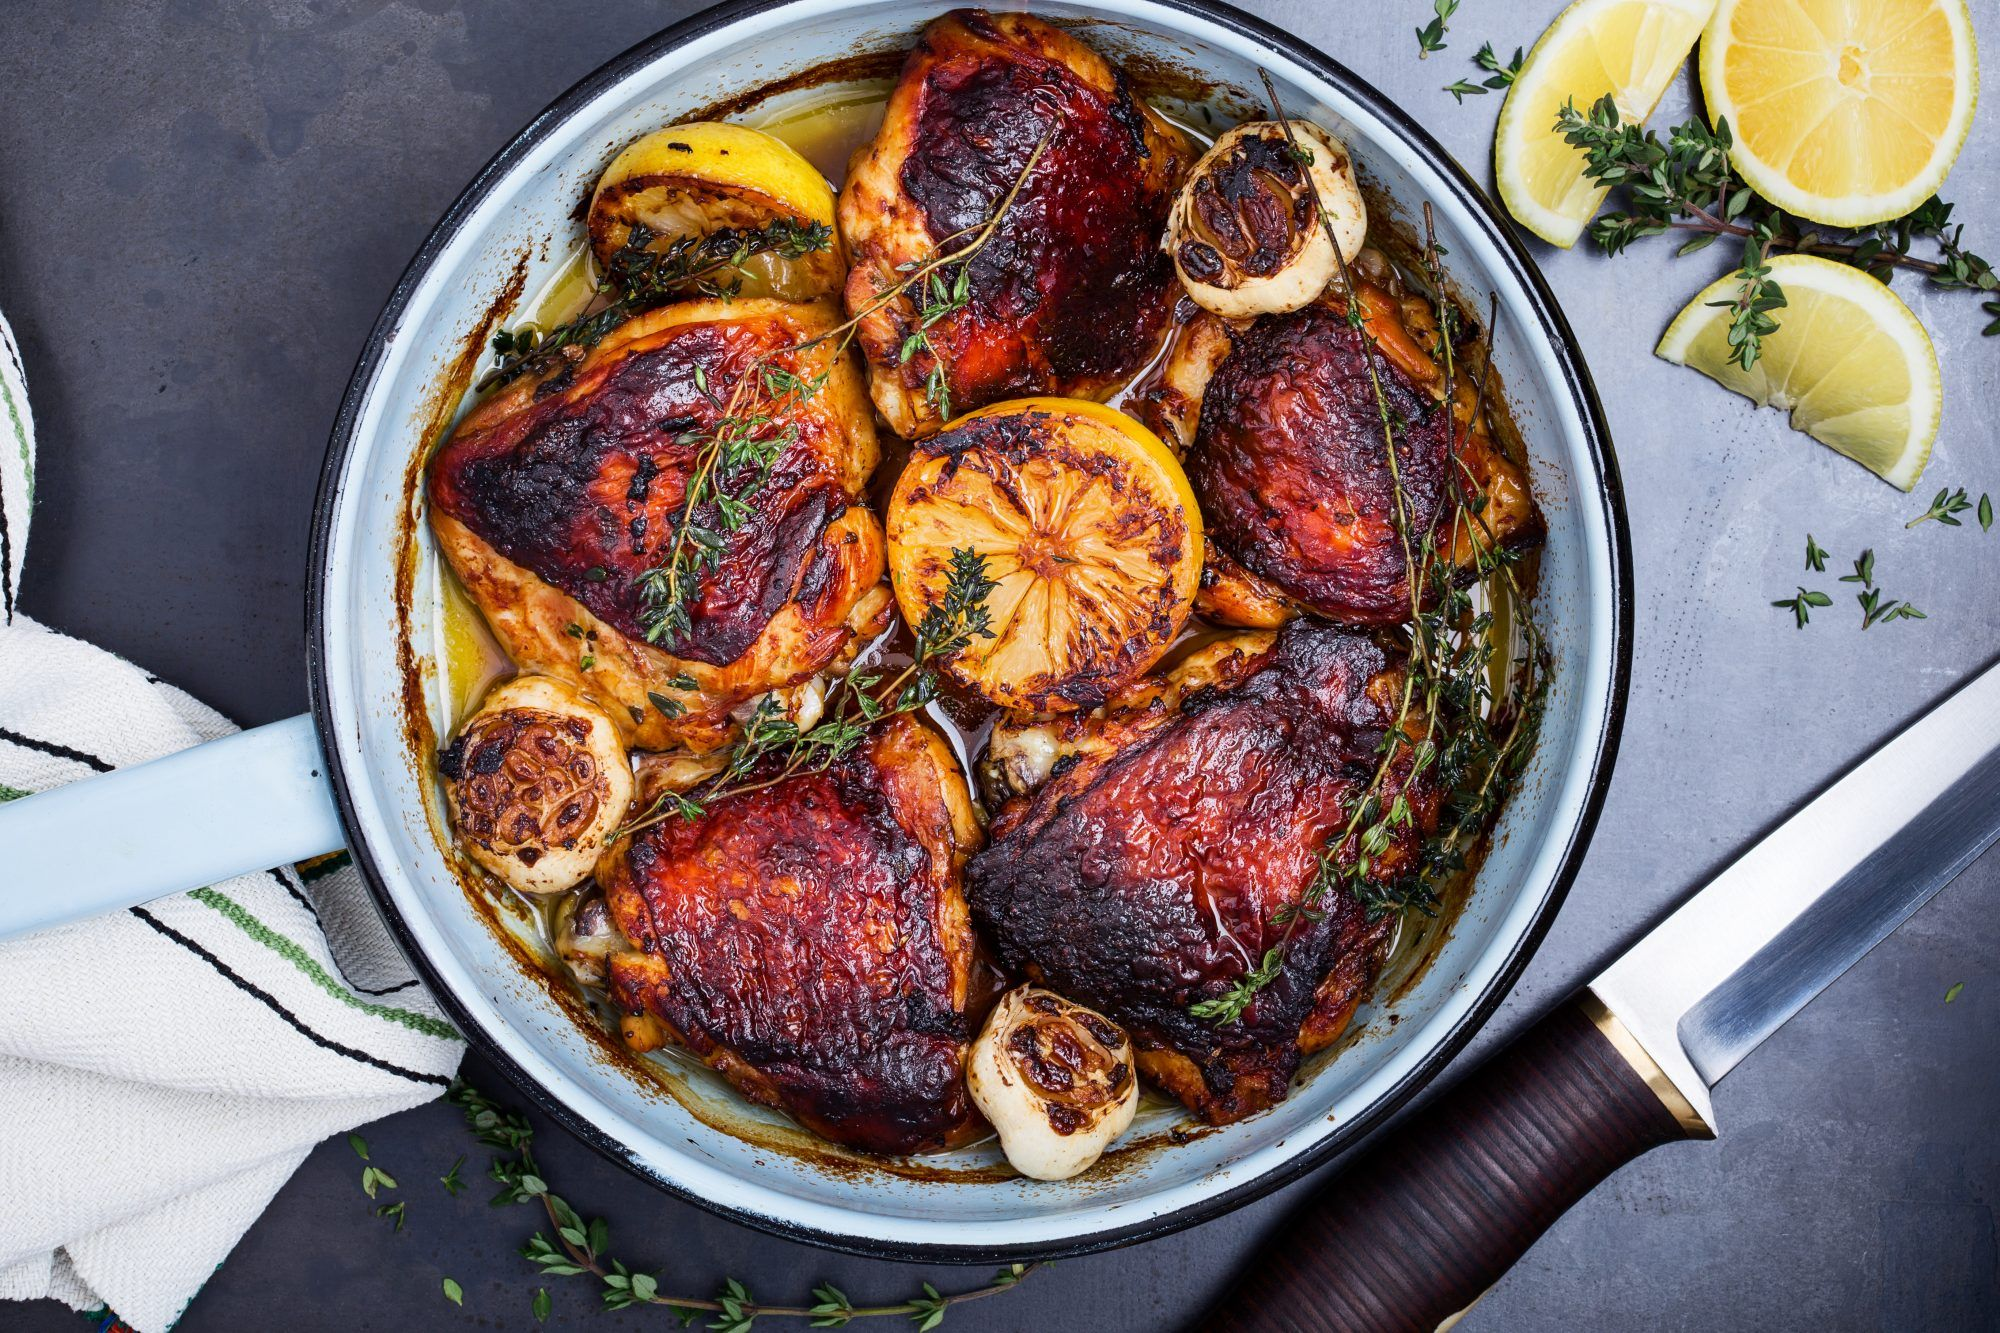 Photo of 9 Mistakes to Avoid When Cooking Chicken, According to Chefs